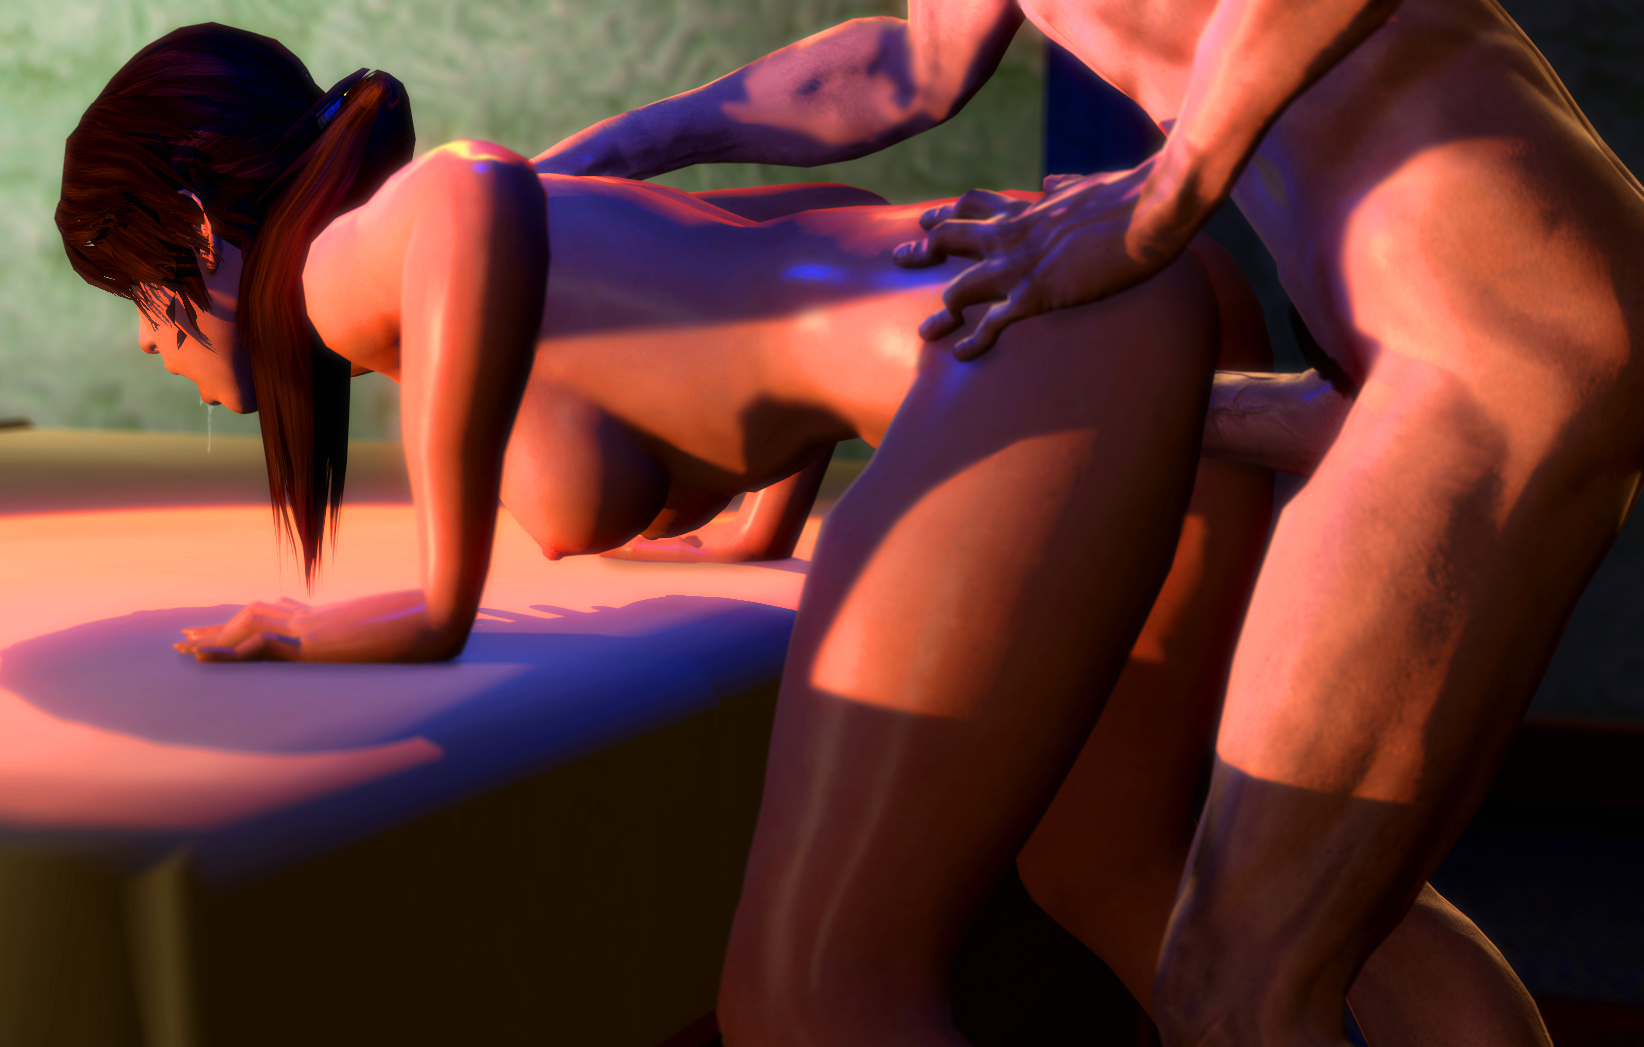 Popular photos results: lara croft 3d hentai porn scene